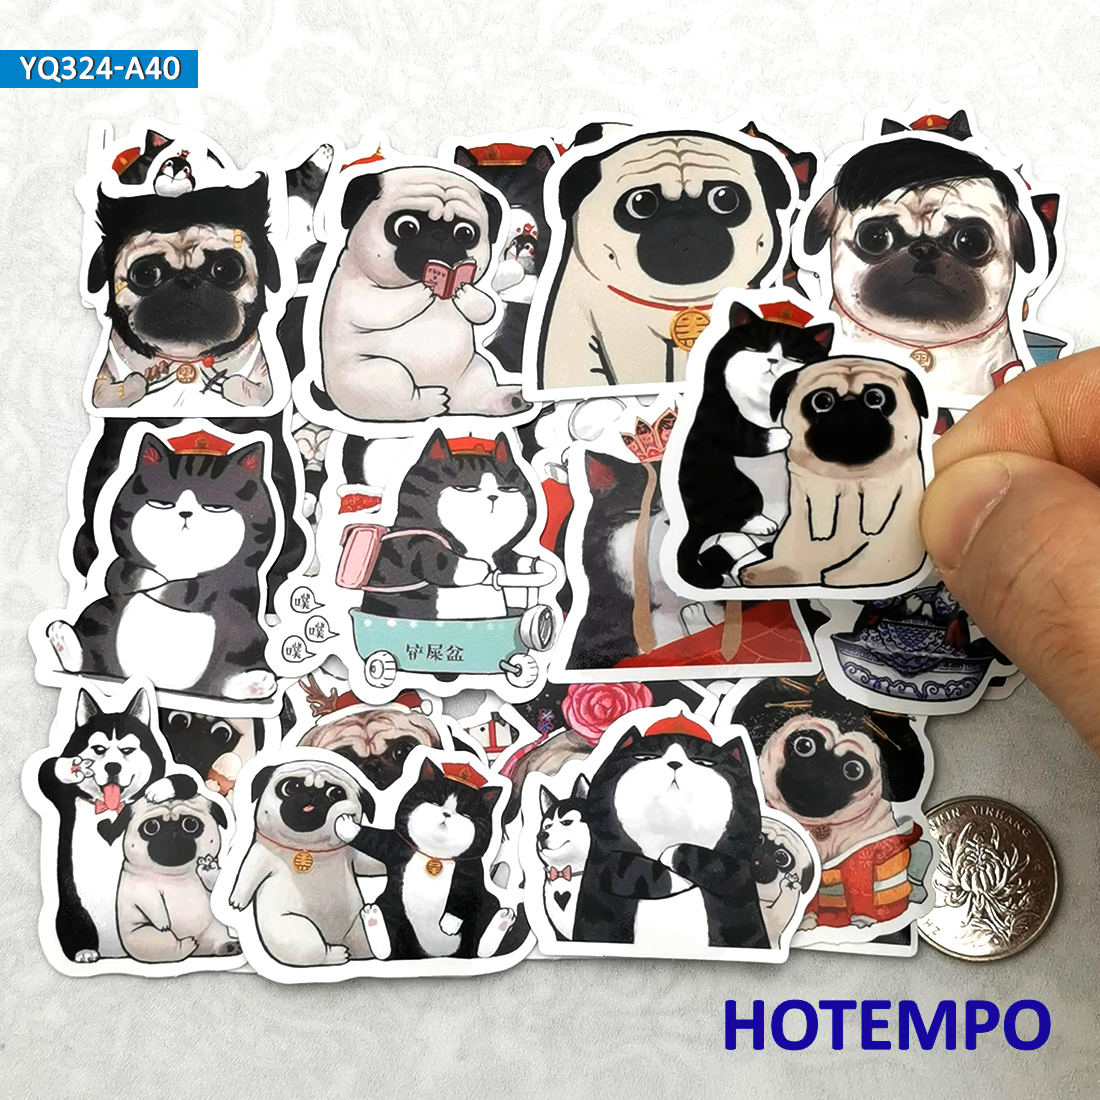 40pcs Cute Cat Emperor Dog Lord Cosplay Anime Diary Stickers for Stationery Scrapbook Mobile Phone Laptop Cartoon Decal Stickers